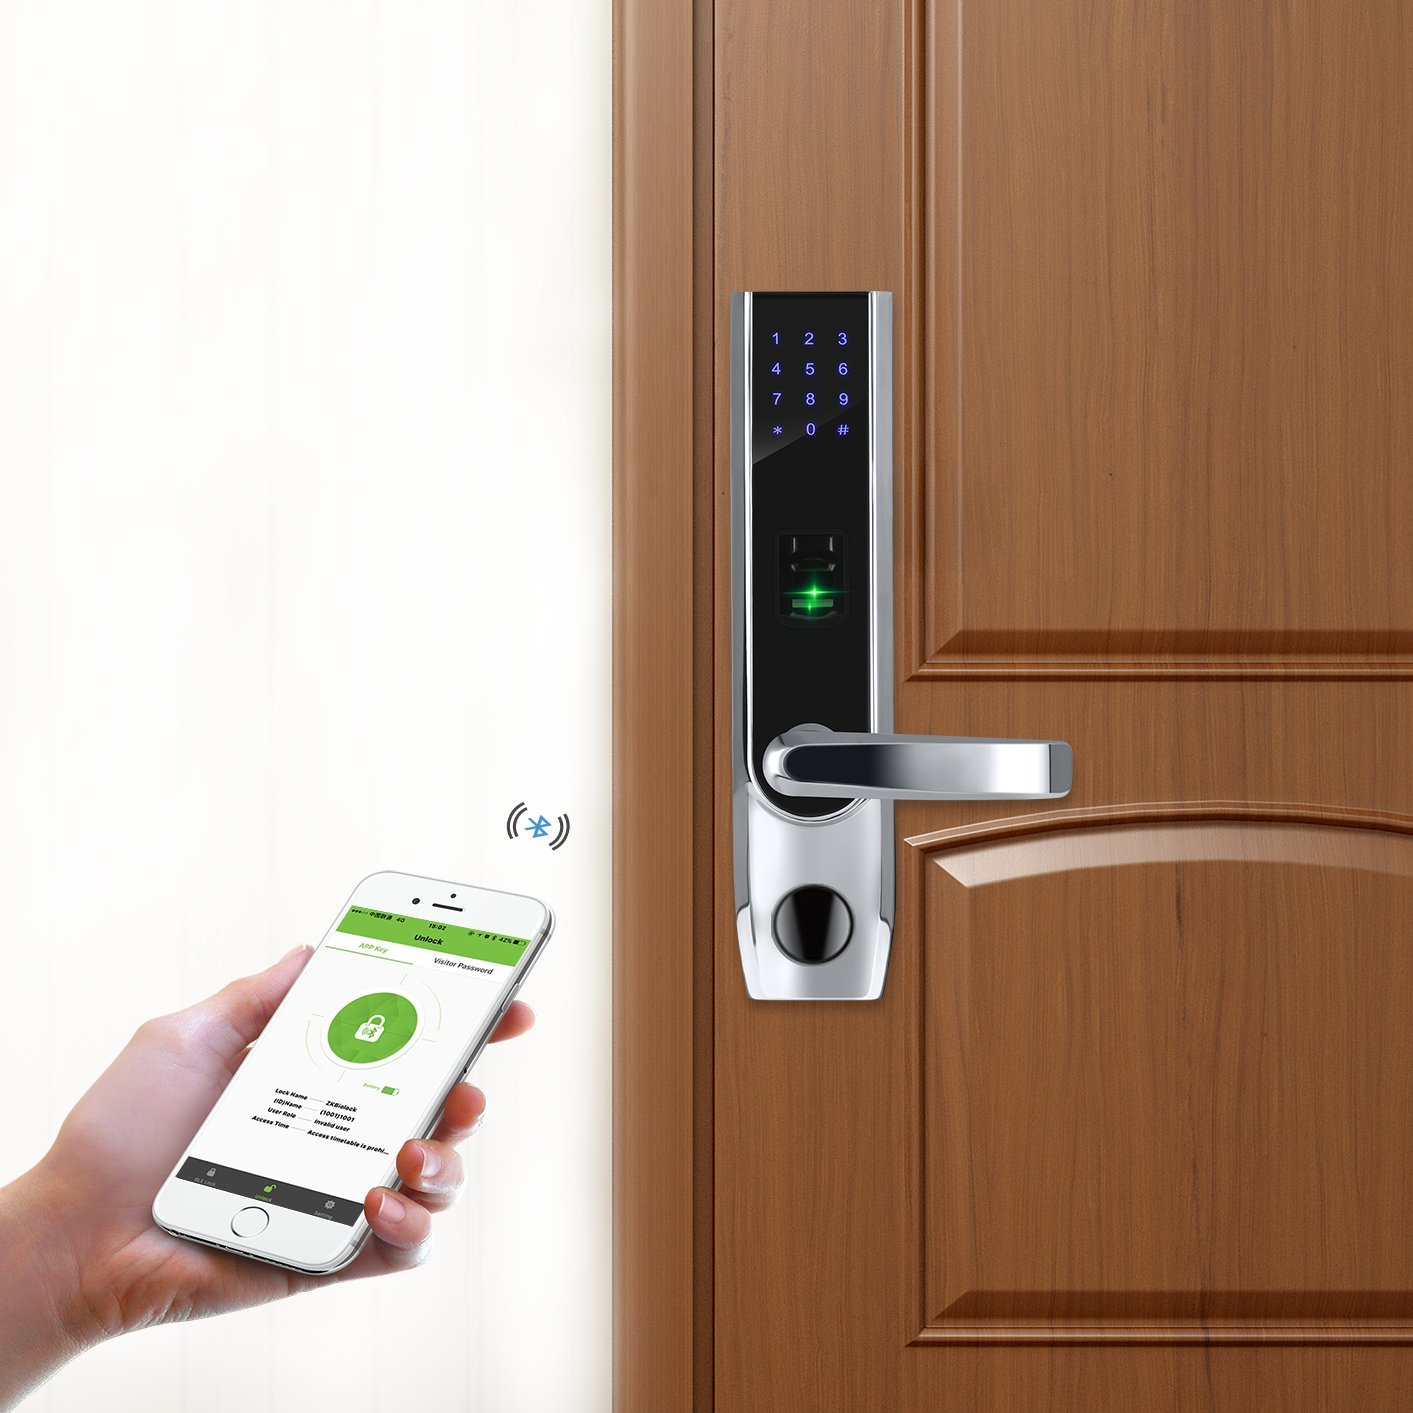 ZKTeco Bluetooth Enable Keyless Locks Biometric Fingerprint Door Lock Keypad Code Smart Home Entry + 5pcs RFID Cards,Left Handed